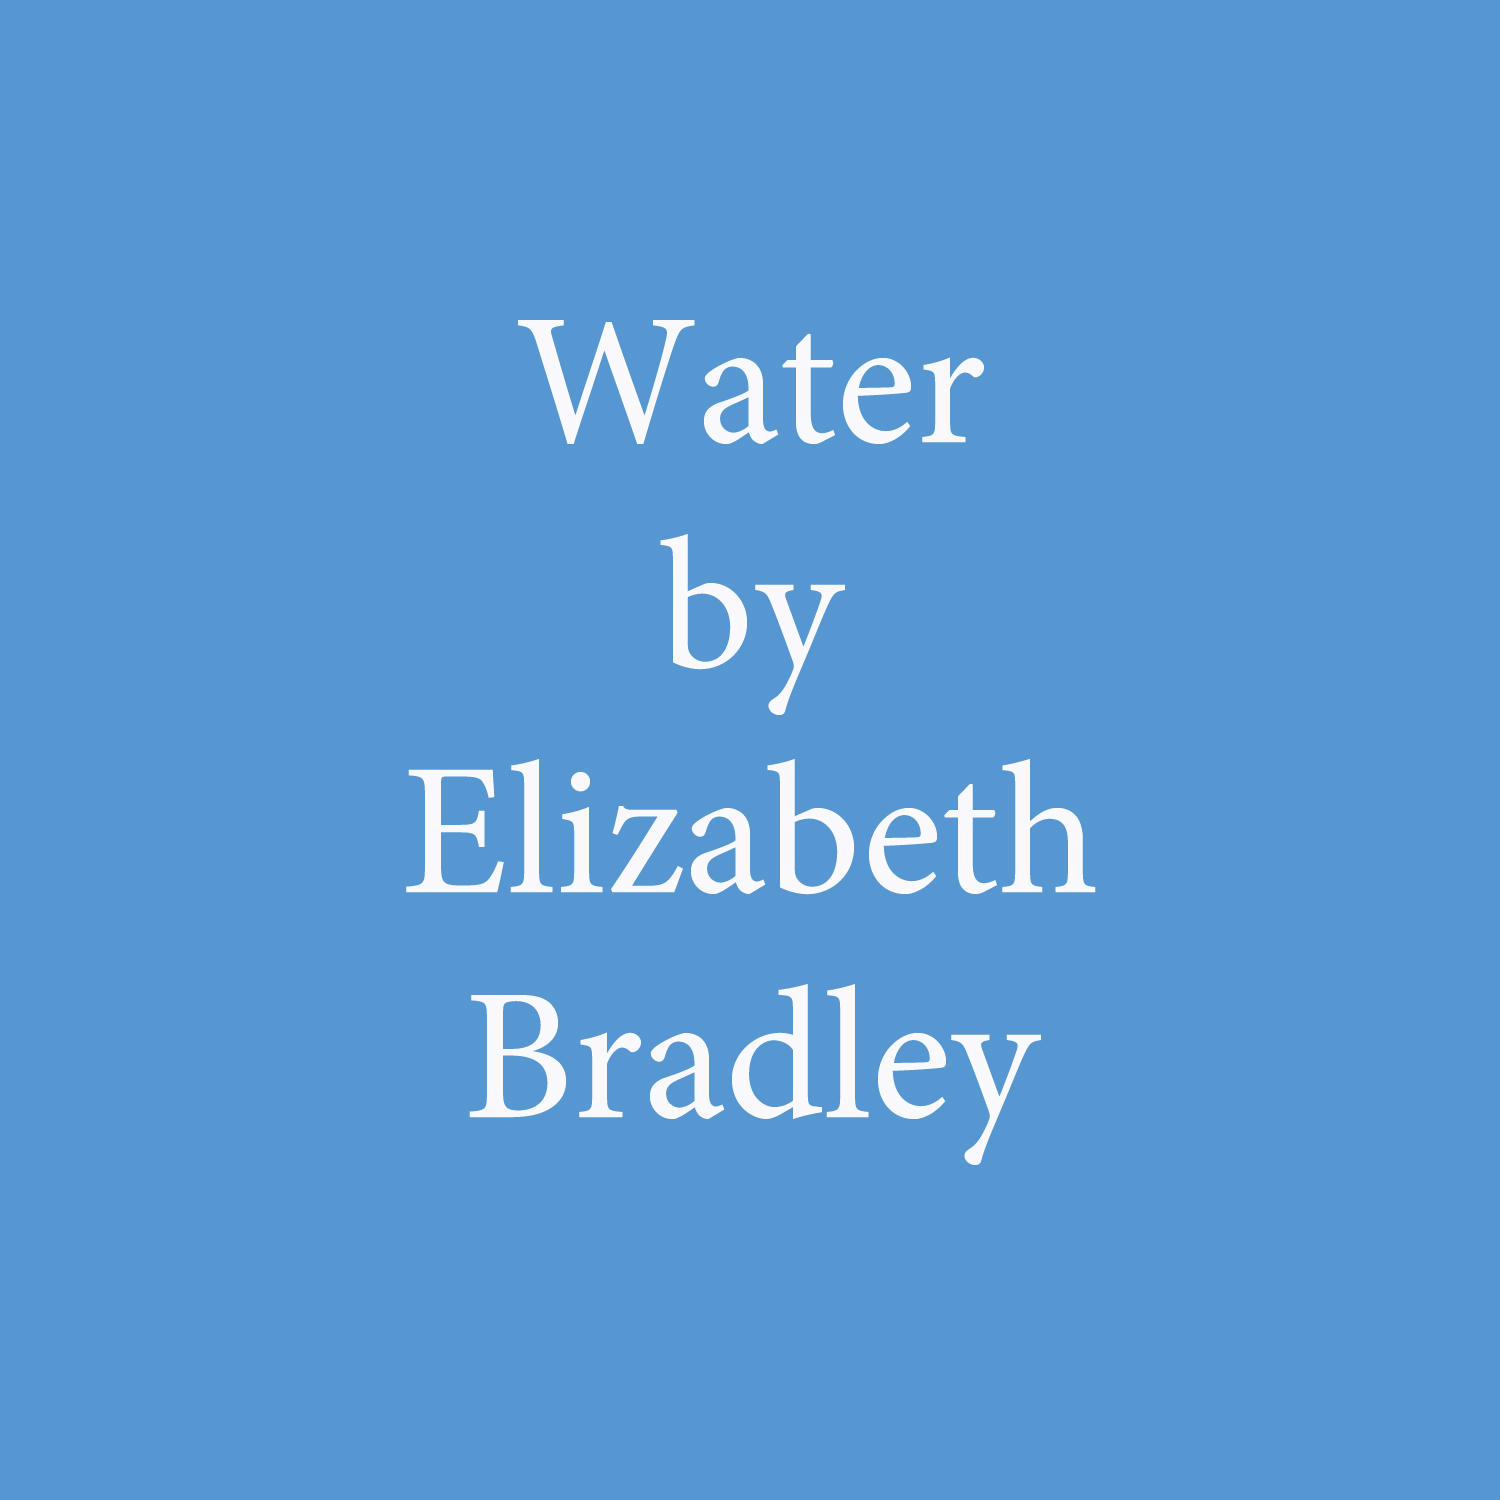 water by elizabeth bradley.jpg